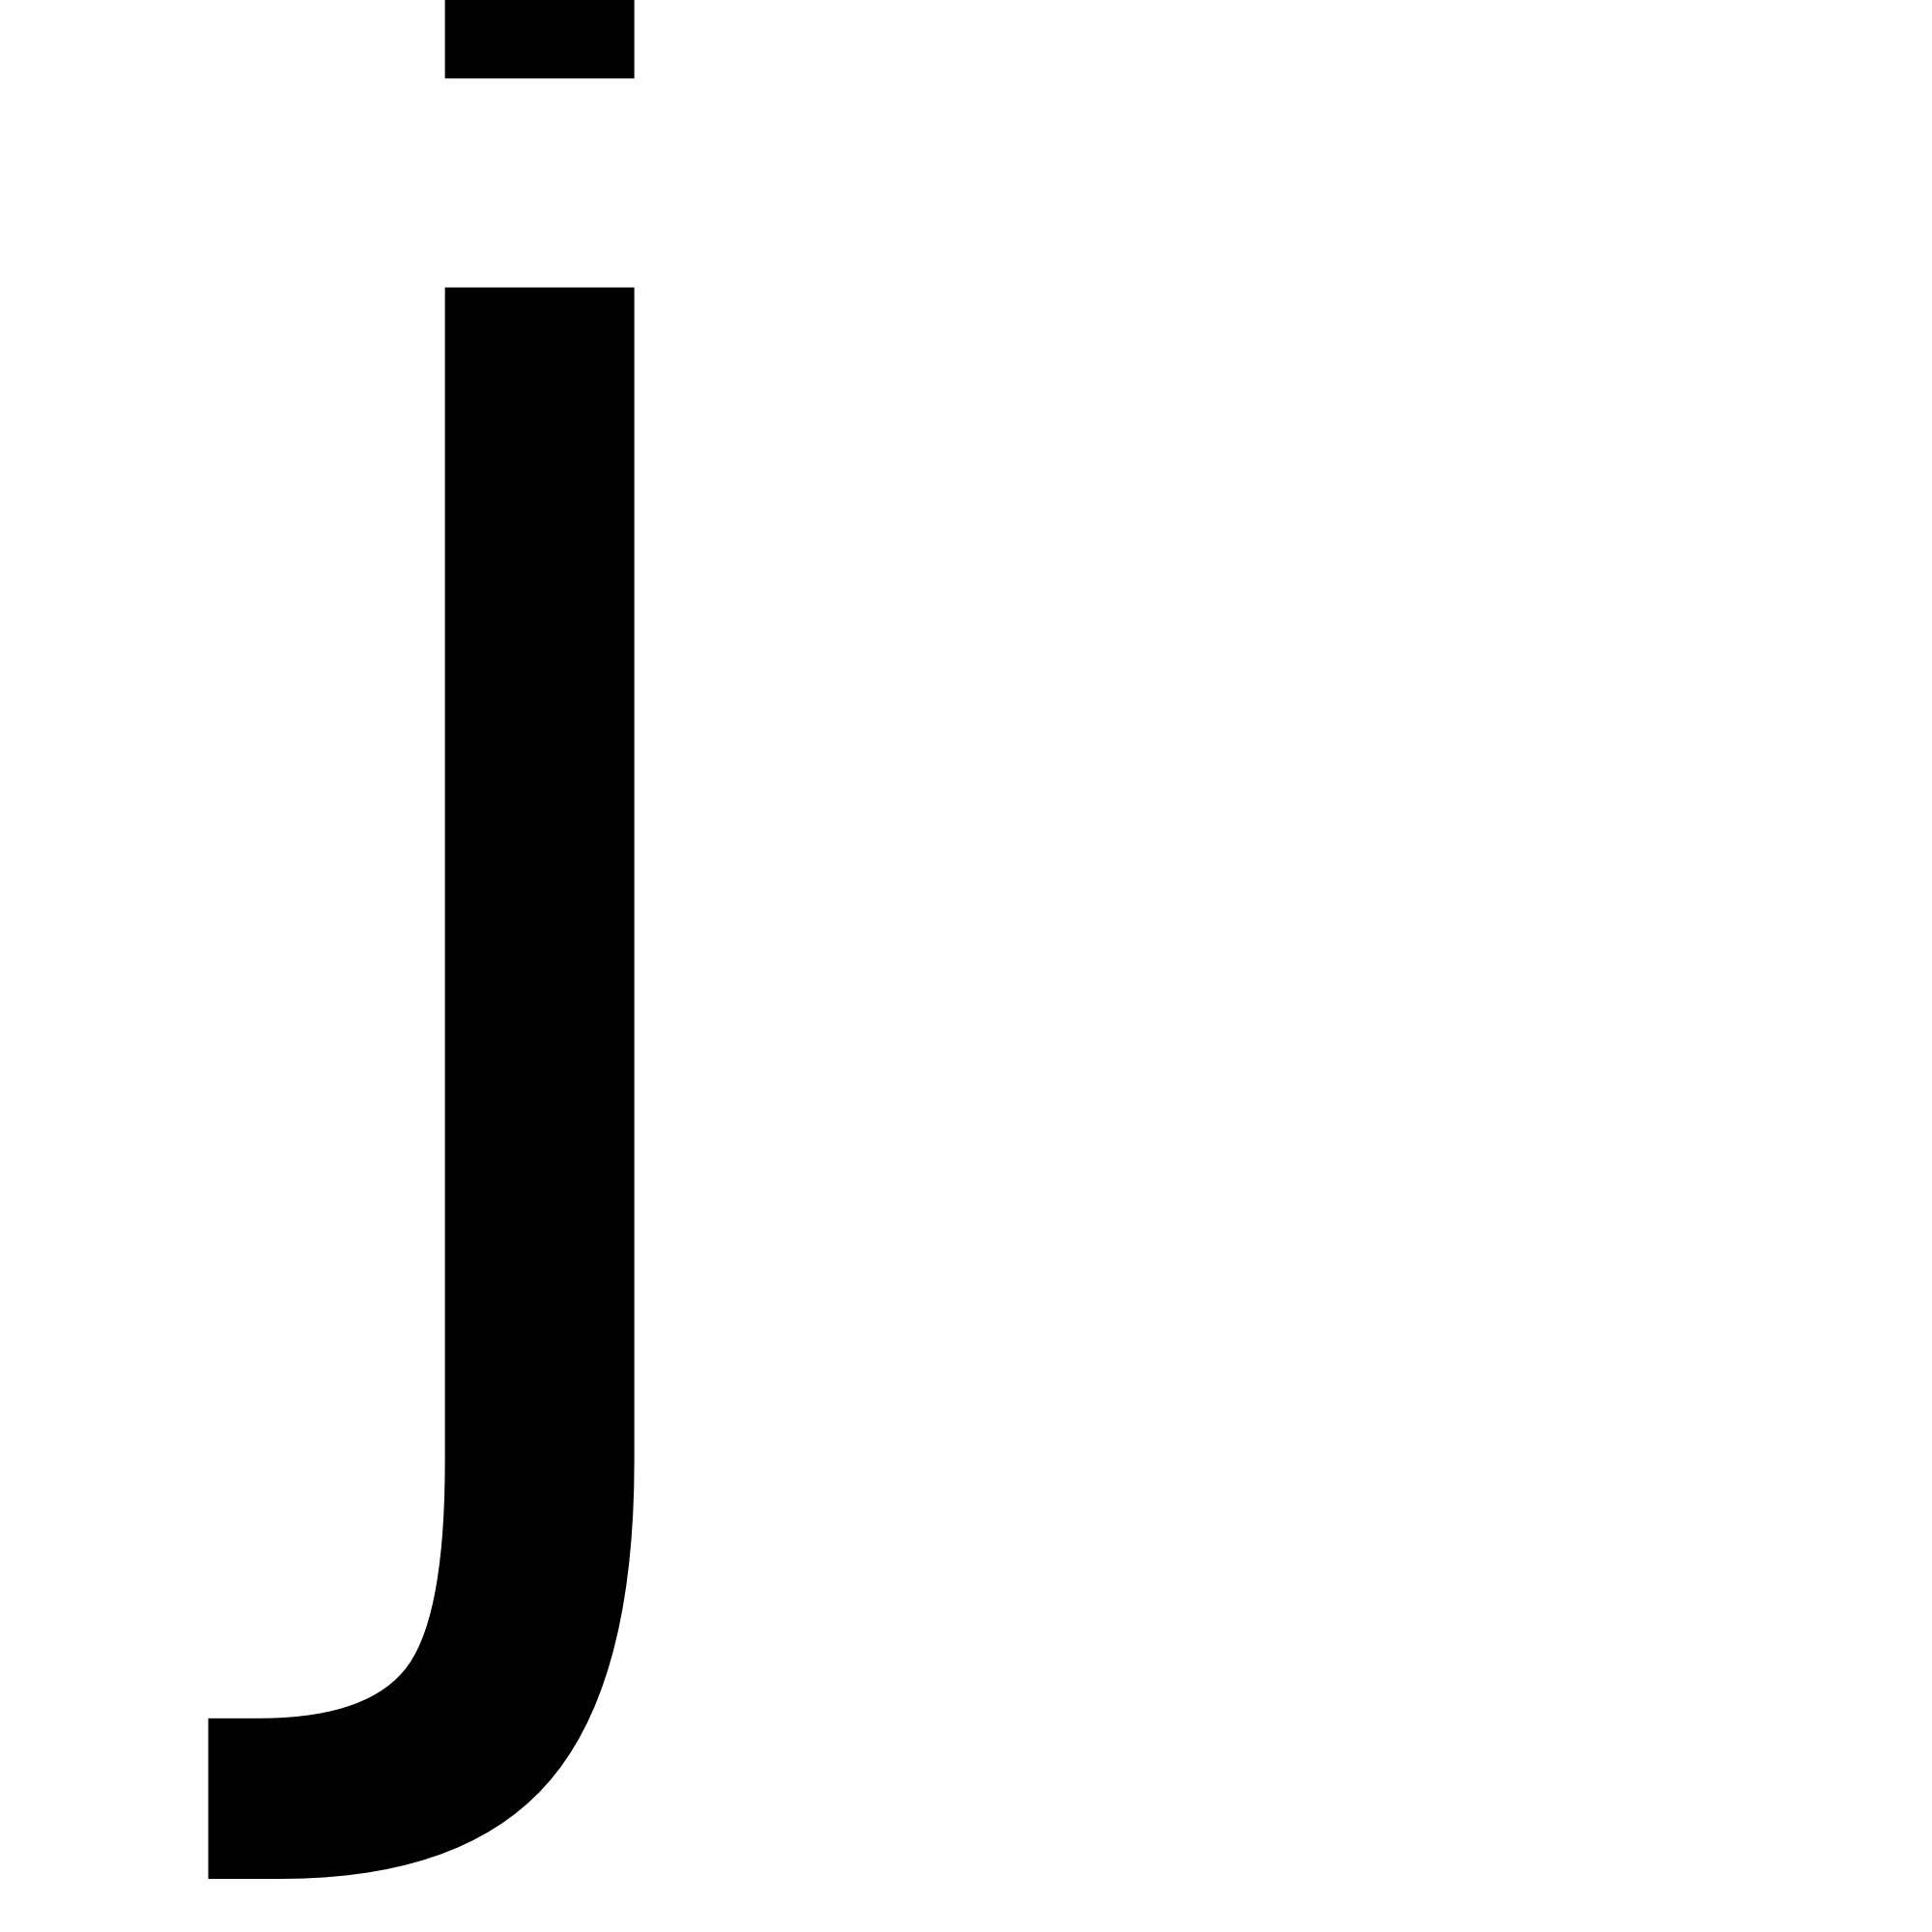 Letter j png. File svg wikimedia commons